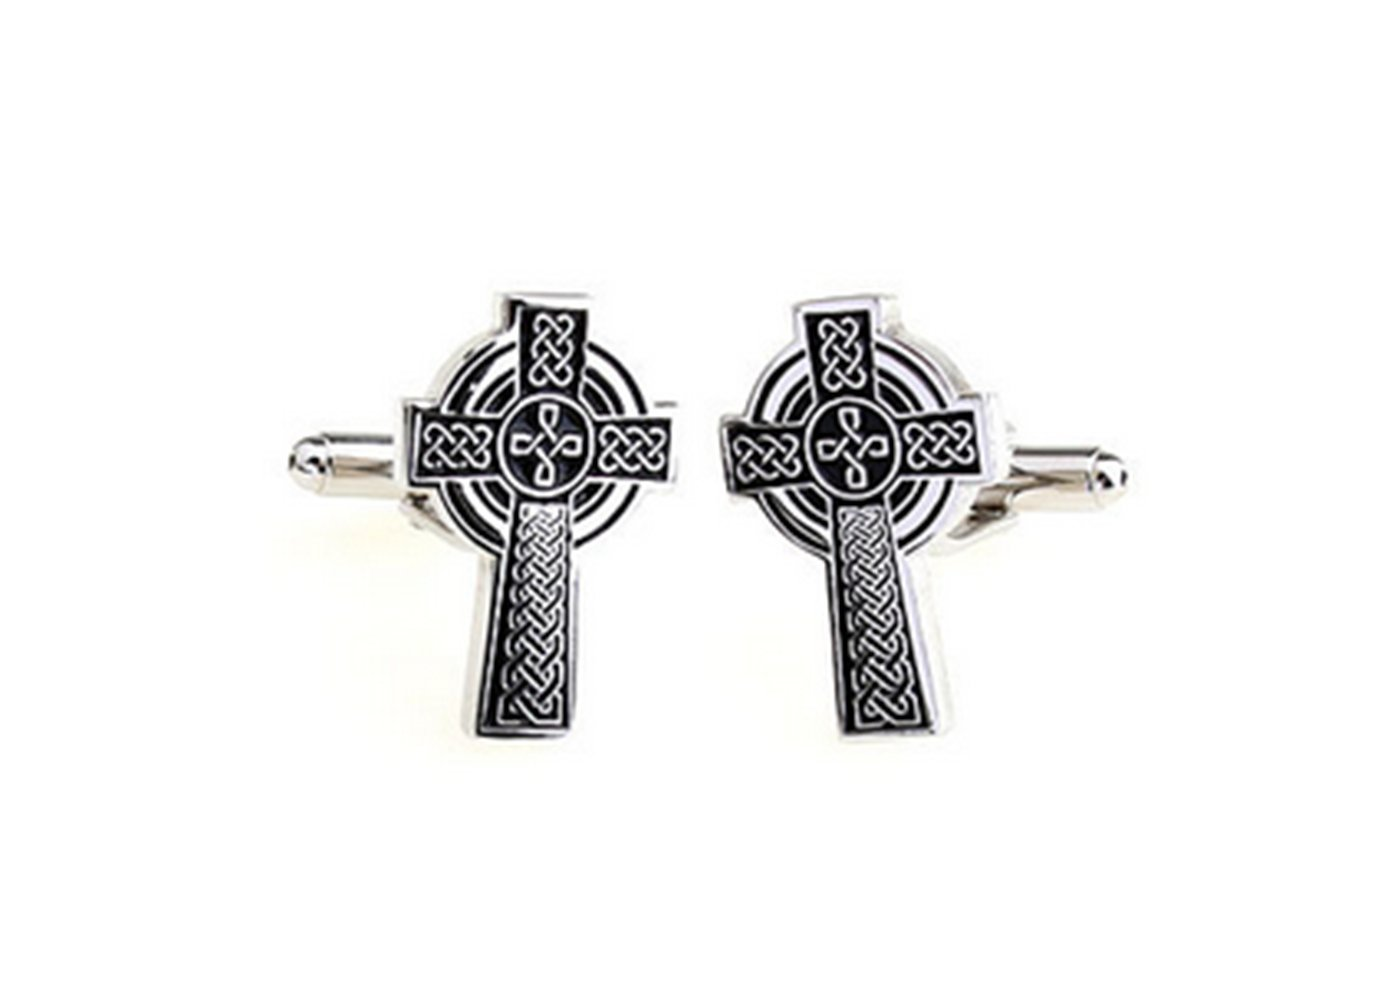 Gudeke Carving Cross Cufflinks Sculpture Traverser Boutons de manchette